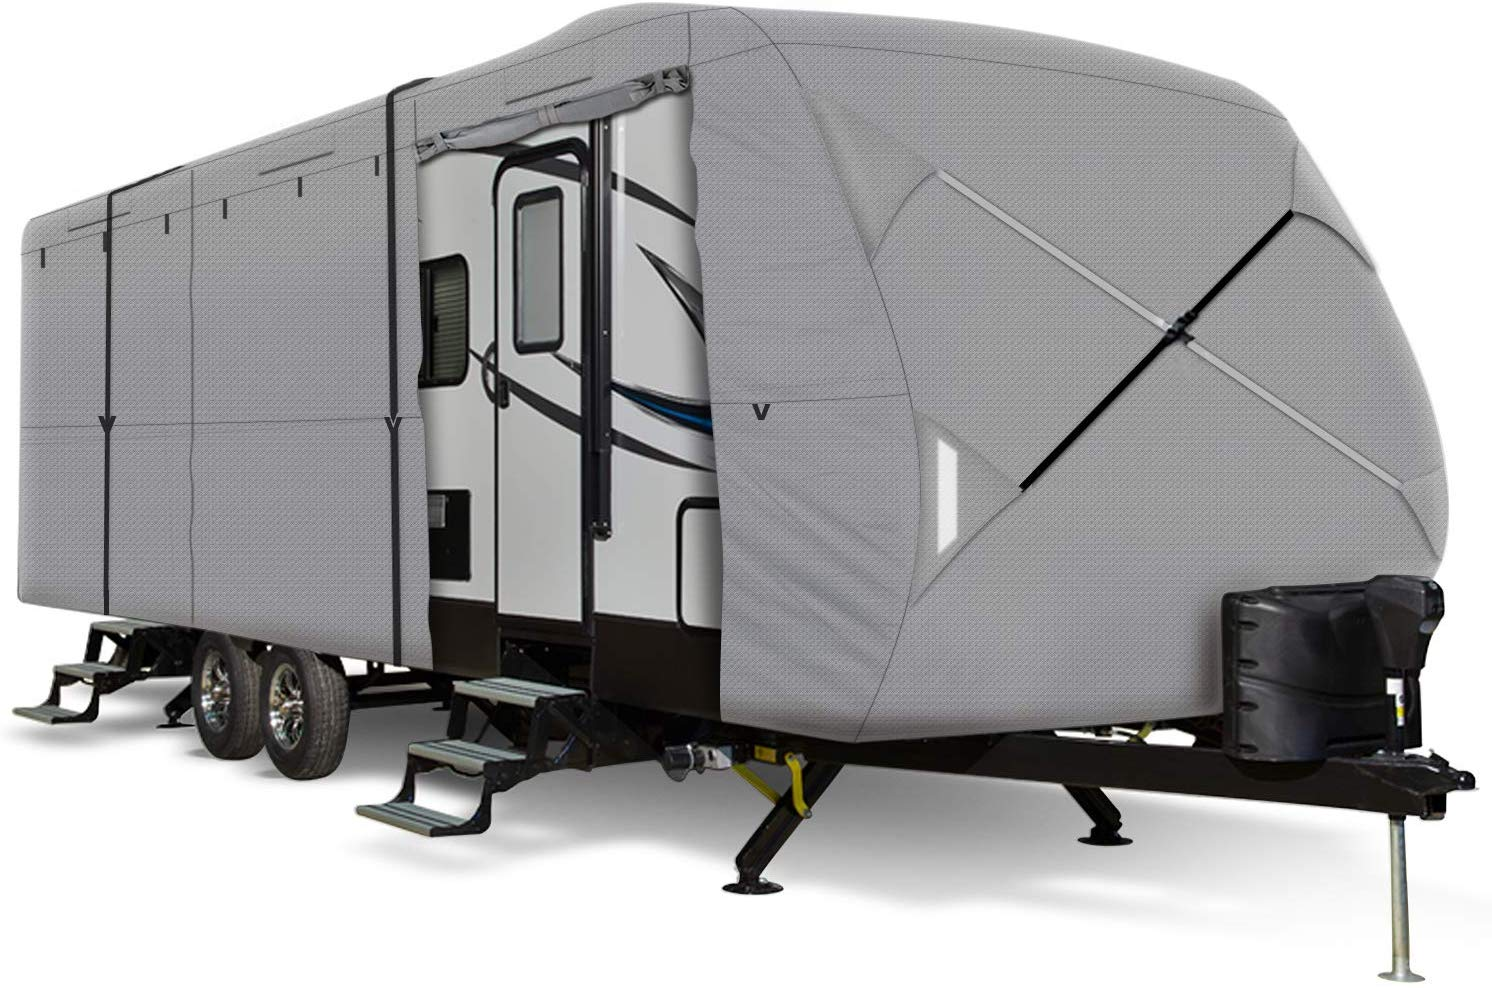 Goldline Class B RV Cover by Eevelle Waterproof Fabric Tan and Gray